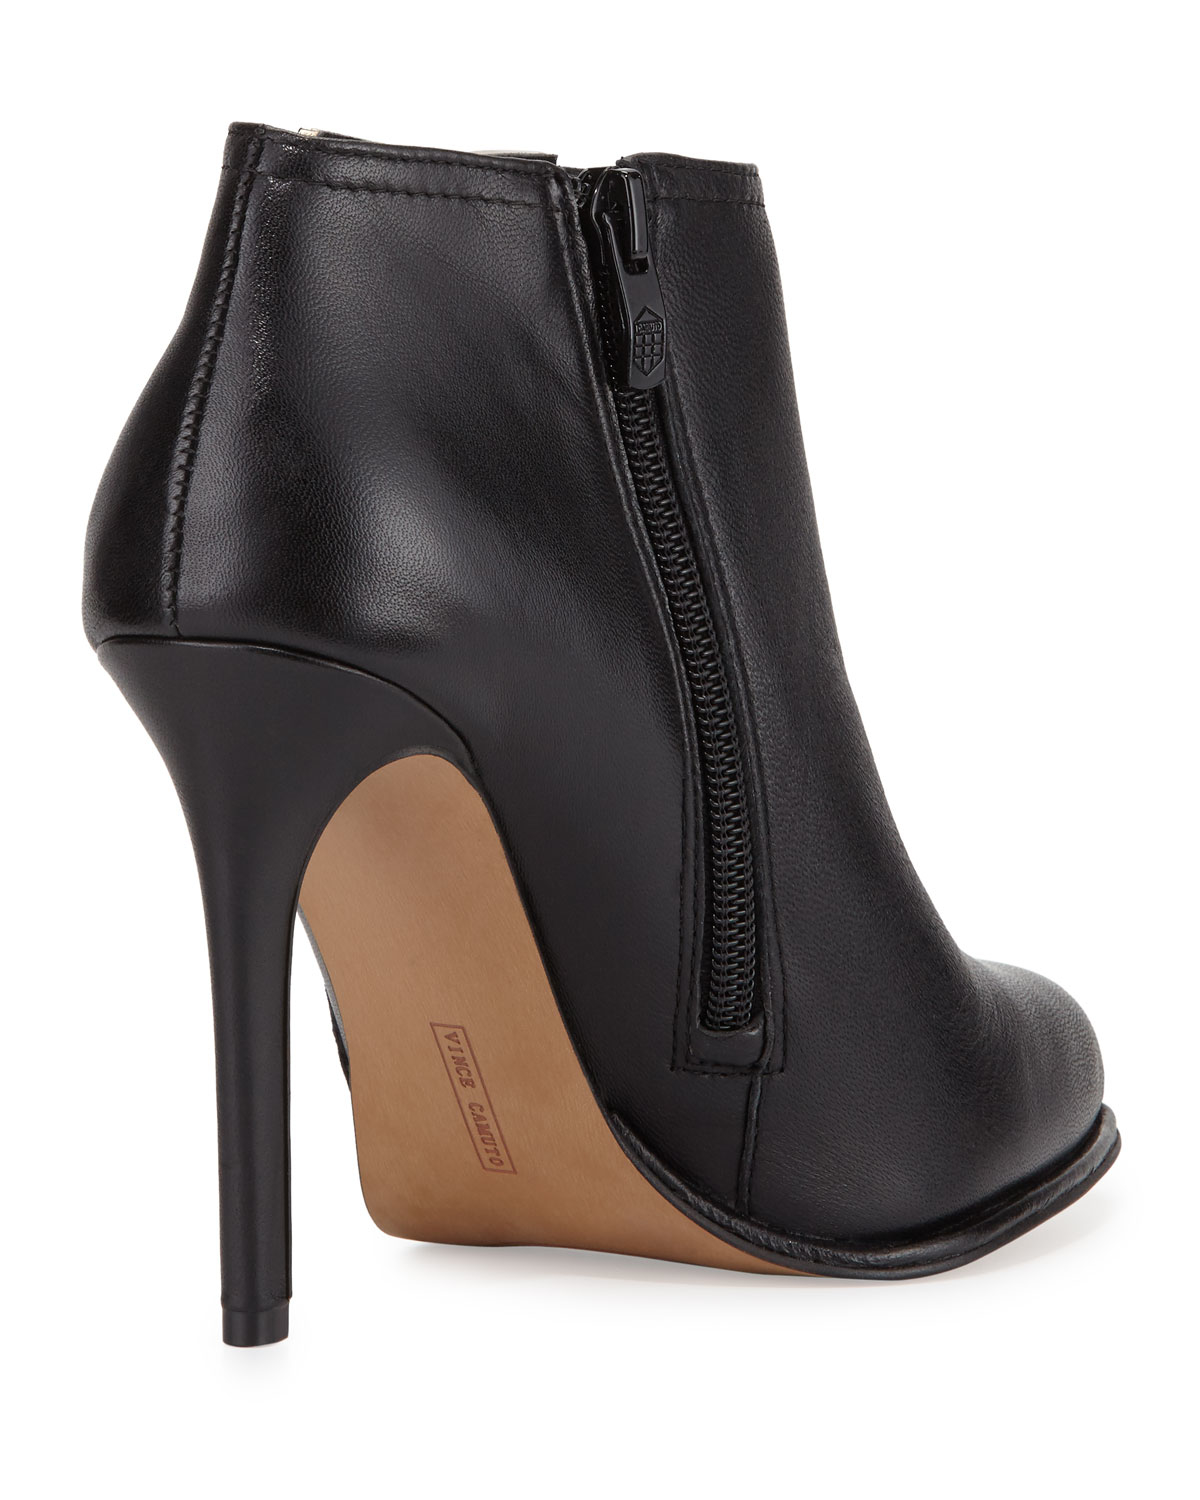 7cb69a04f Vince Camuto Leanna Leather High-heel Bootie in Black - Lyst